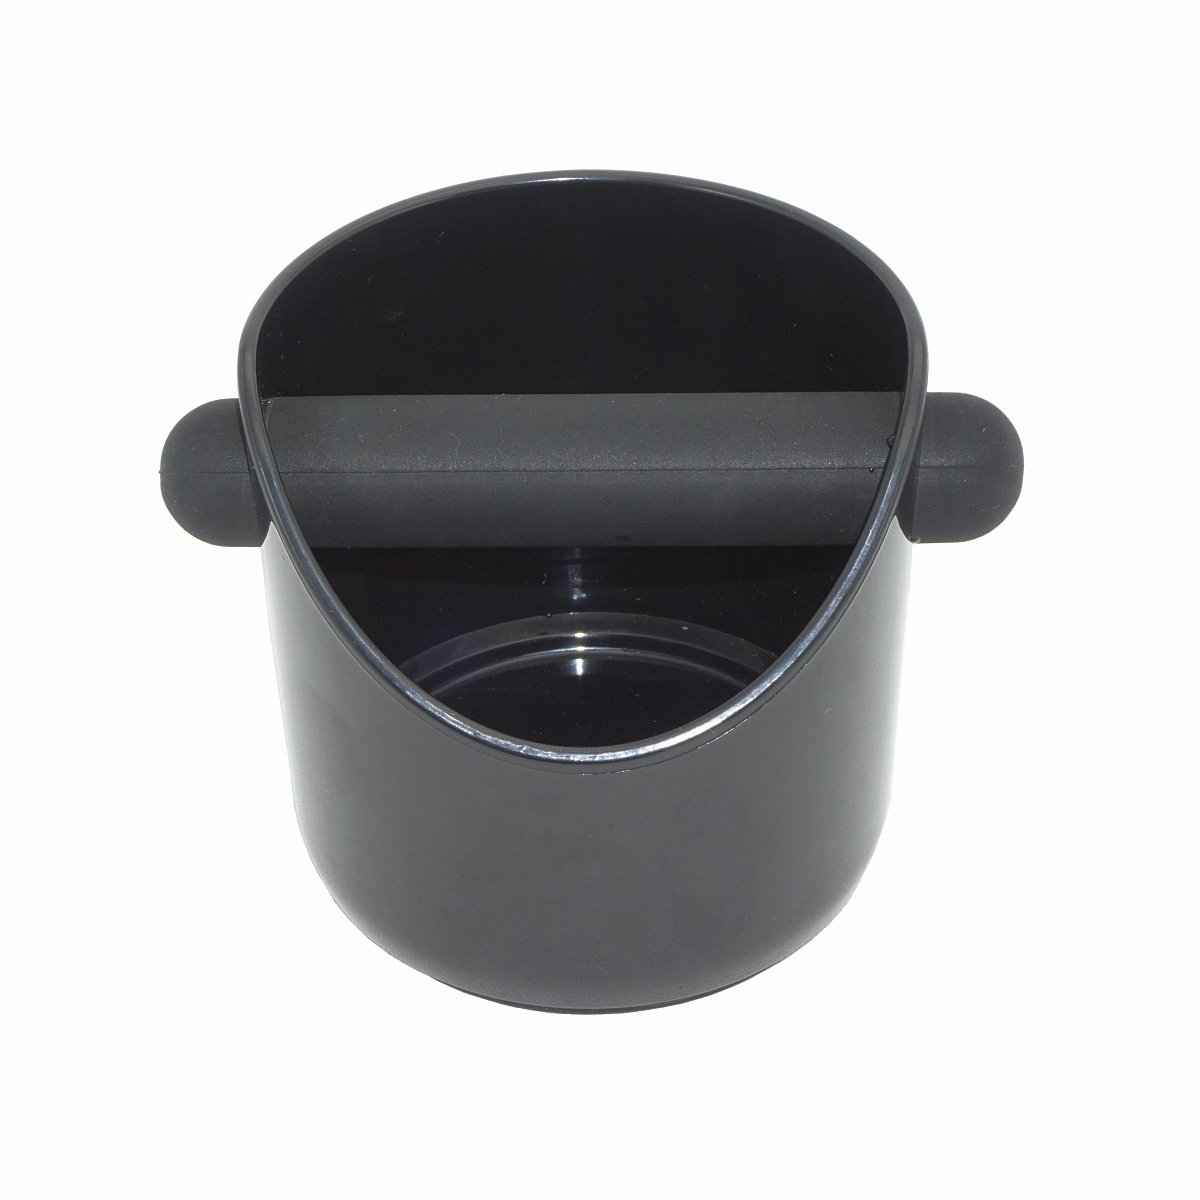 ABS Espresso Knock Box Hard Plastic Coffee Knock Box with Silicone Ring Bottom - Black (Model A)